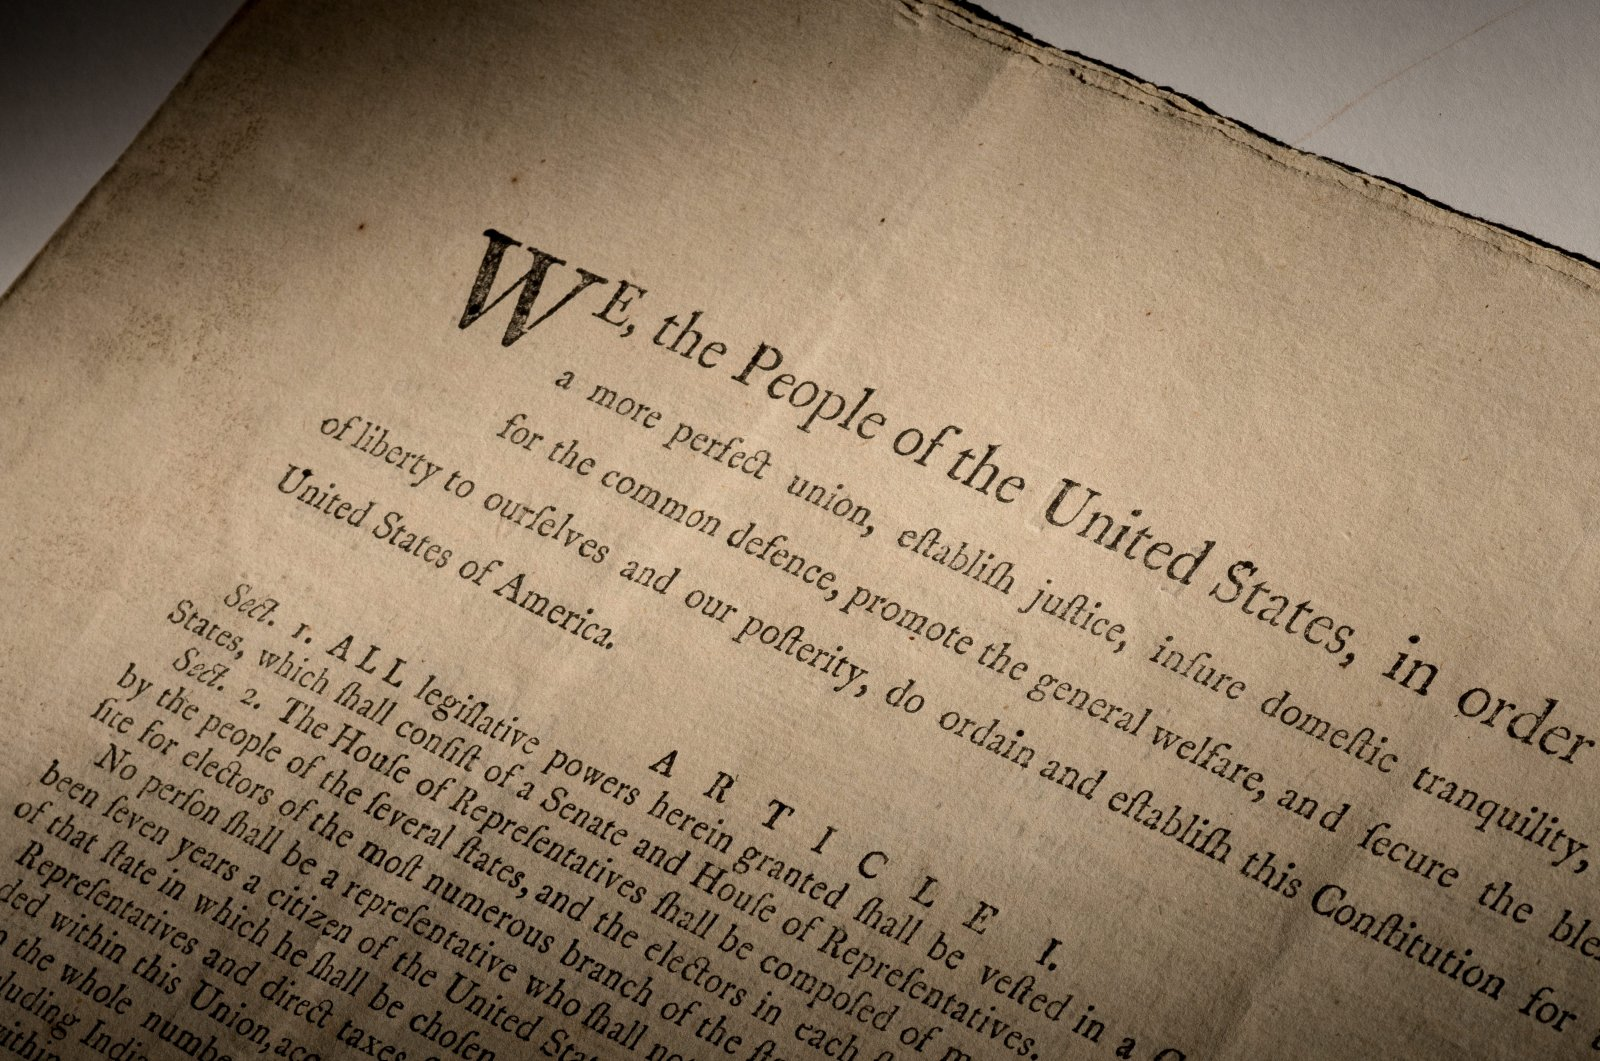 An extremely rare official first-edition printed copy of the U.S. Constitution, which will be auctioned off in mid-November 2021 by Sotheby's in New York, is seen in this handout image provided by Sotheby's. (Reuters pHOTO)